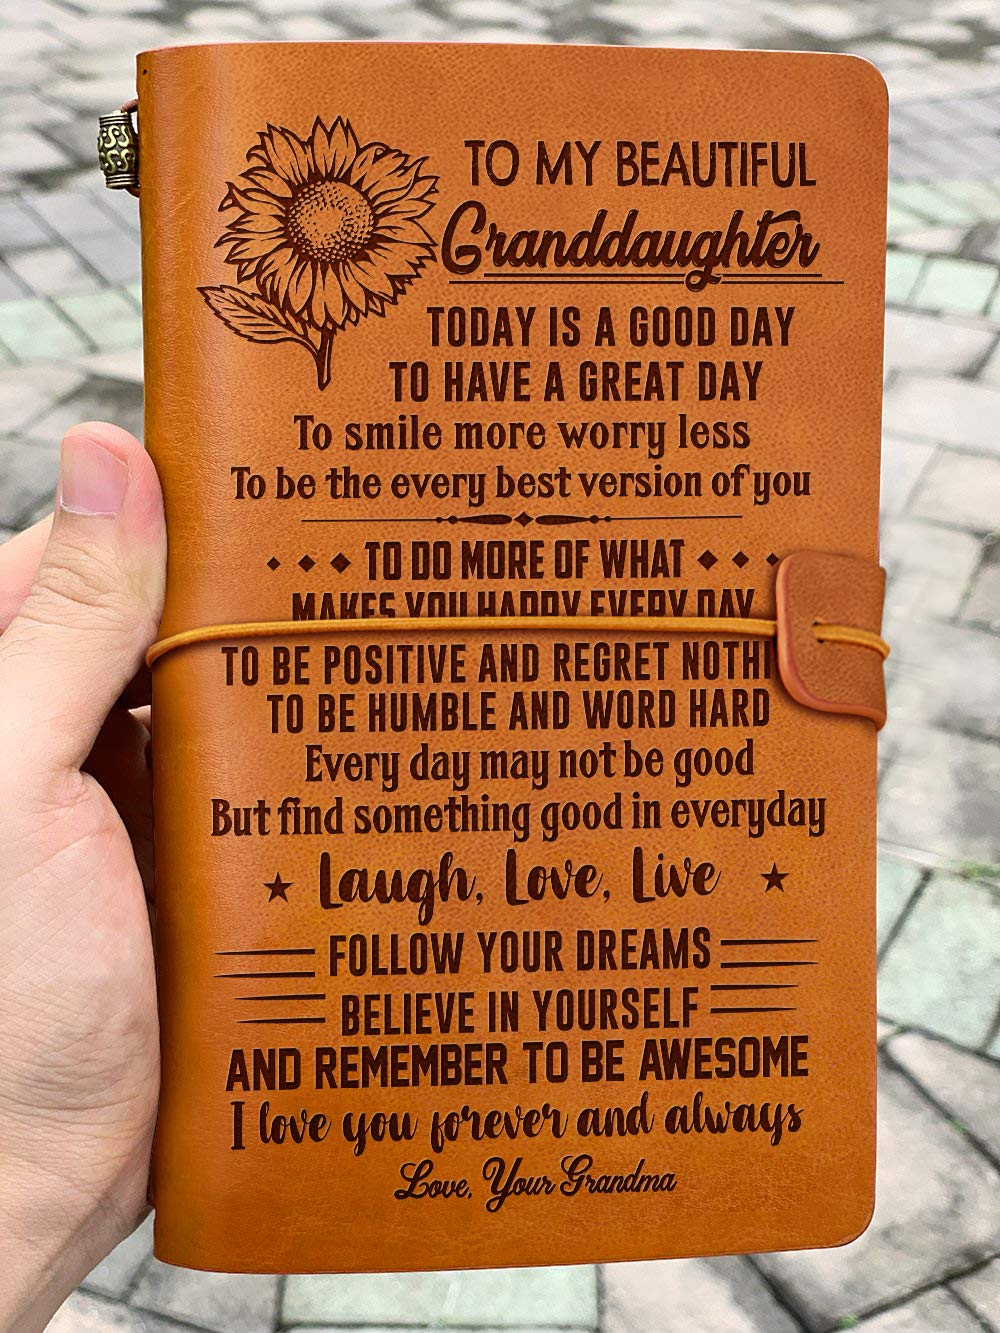 Leather Journal - Grandma To Granddaughter, Laugh Love Liv - Gift for Granddaughter, Gift from grandma, Birthday Gift, Moving Out Gifts, Gift for Students, Back to School Gifts UN262, 7.5''x4.7''